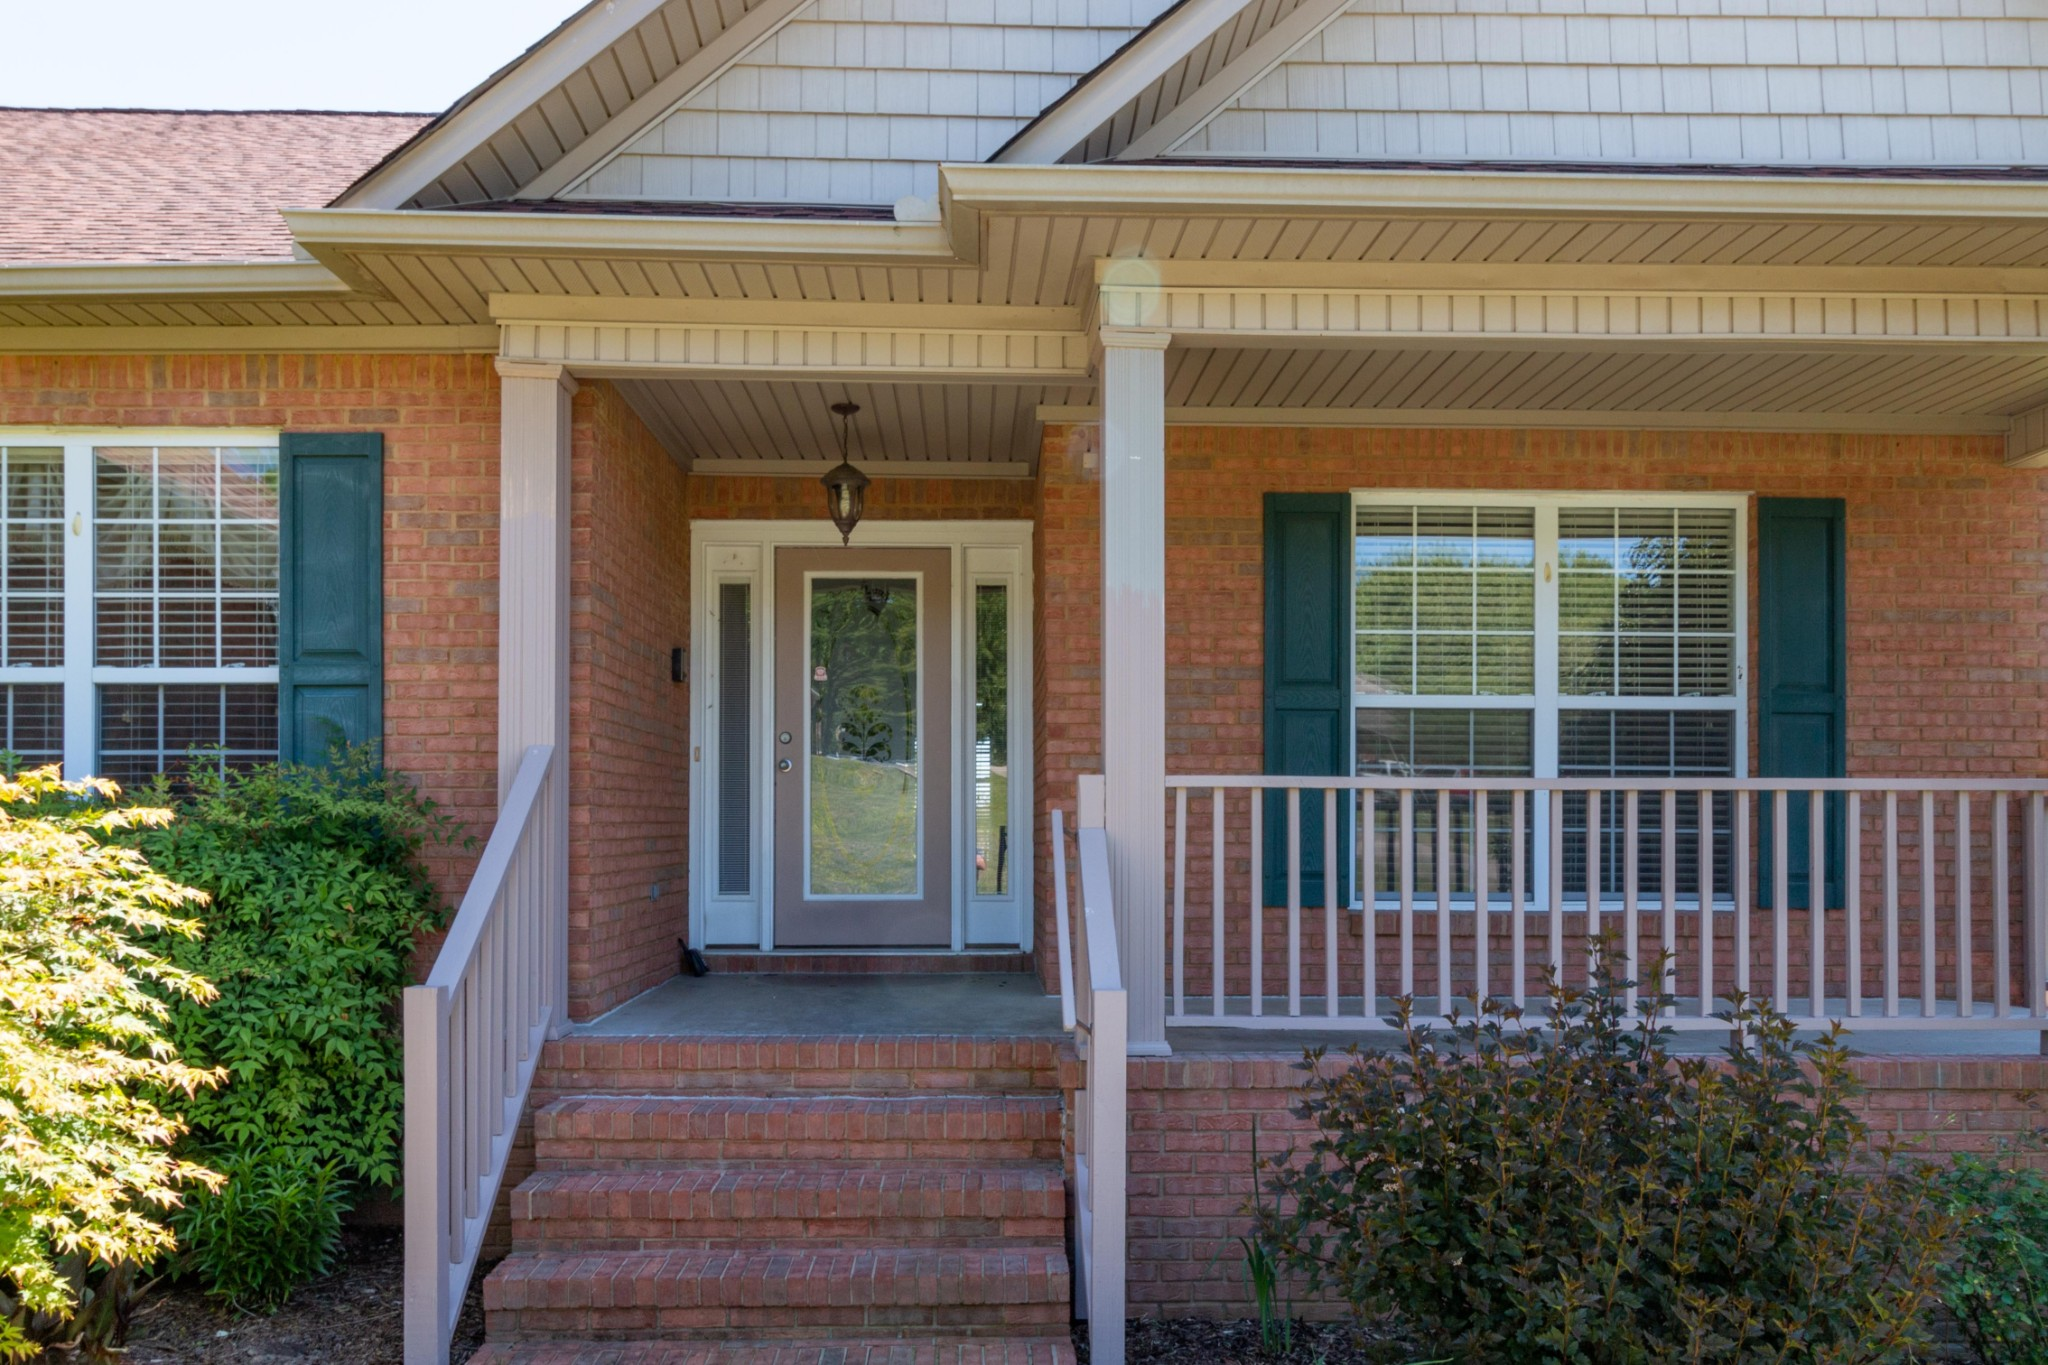 2006 Viewpointe Way, Columbia, TN 38401 - Columbia, TN real estate listing